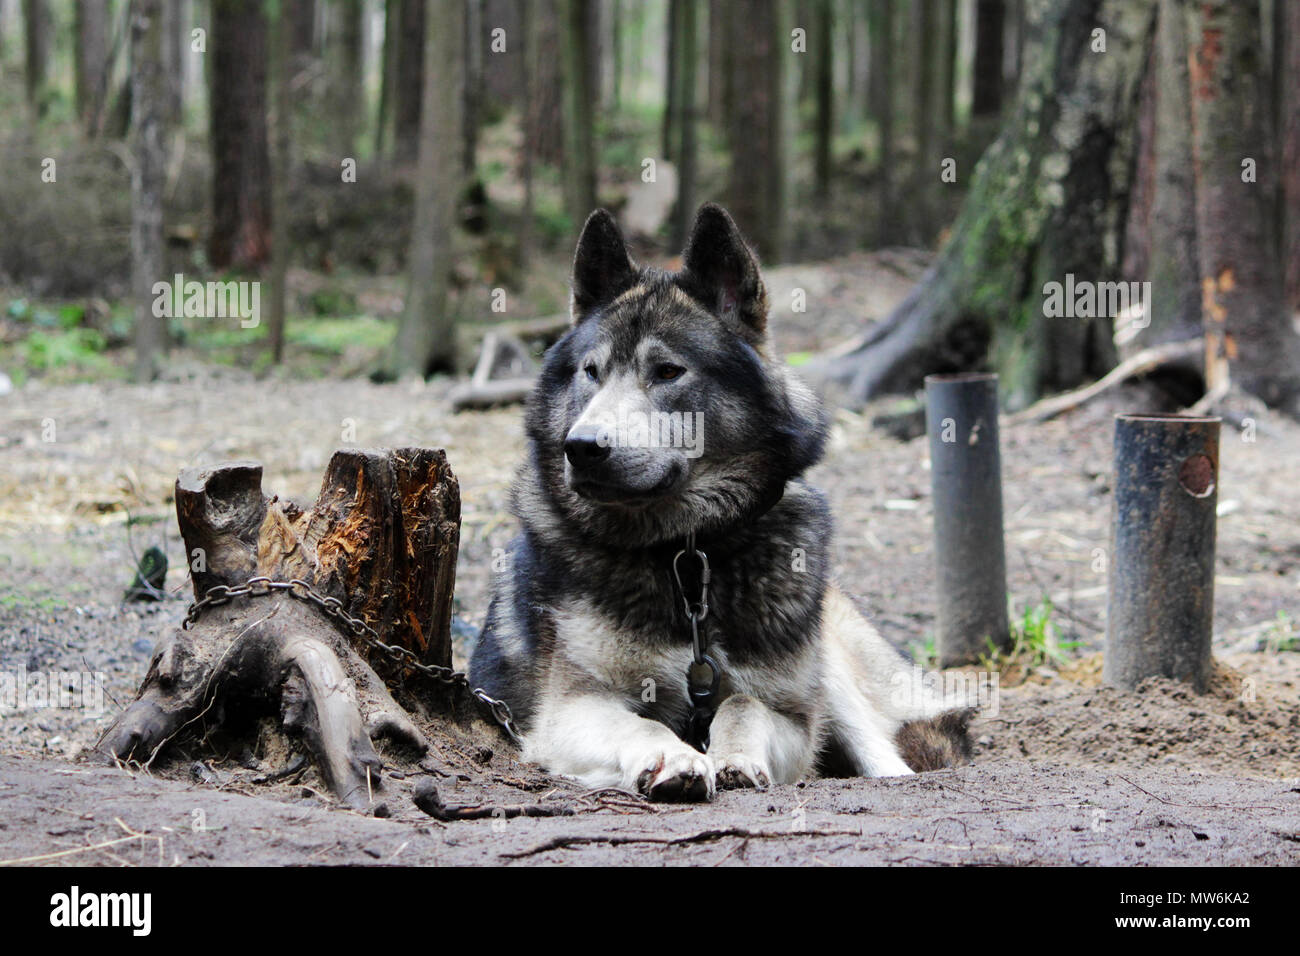 cross between an wolf Canis lupus tundrarum and an Alaska